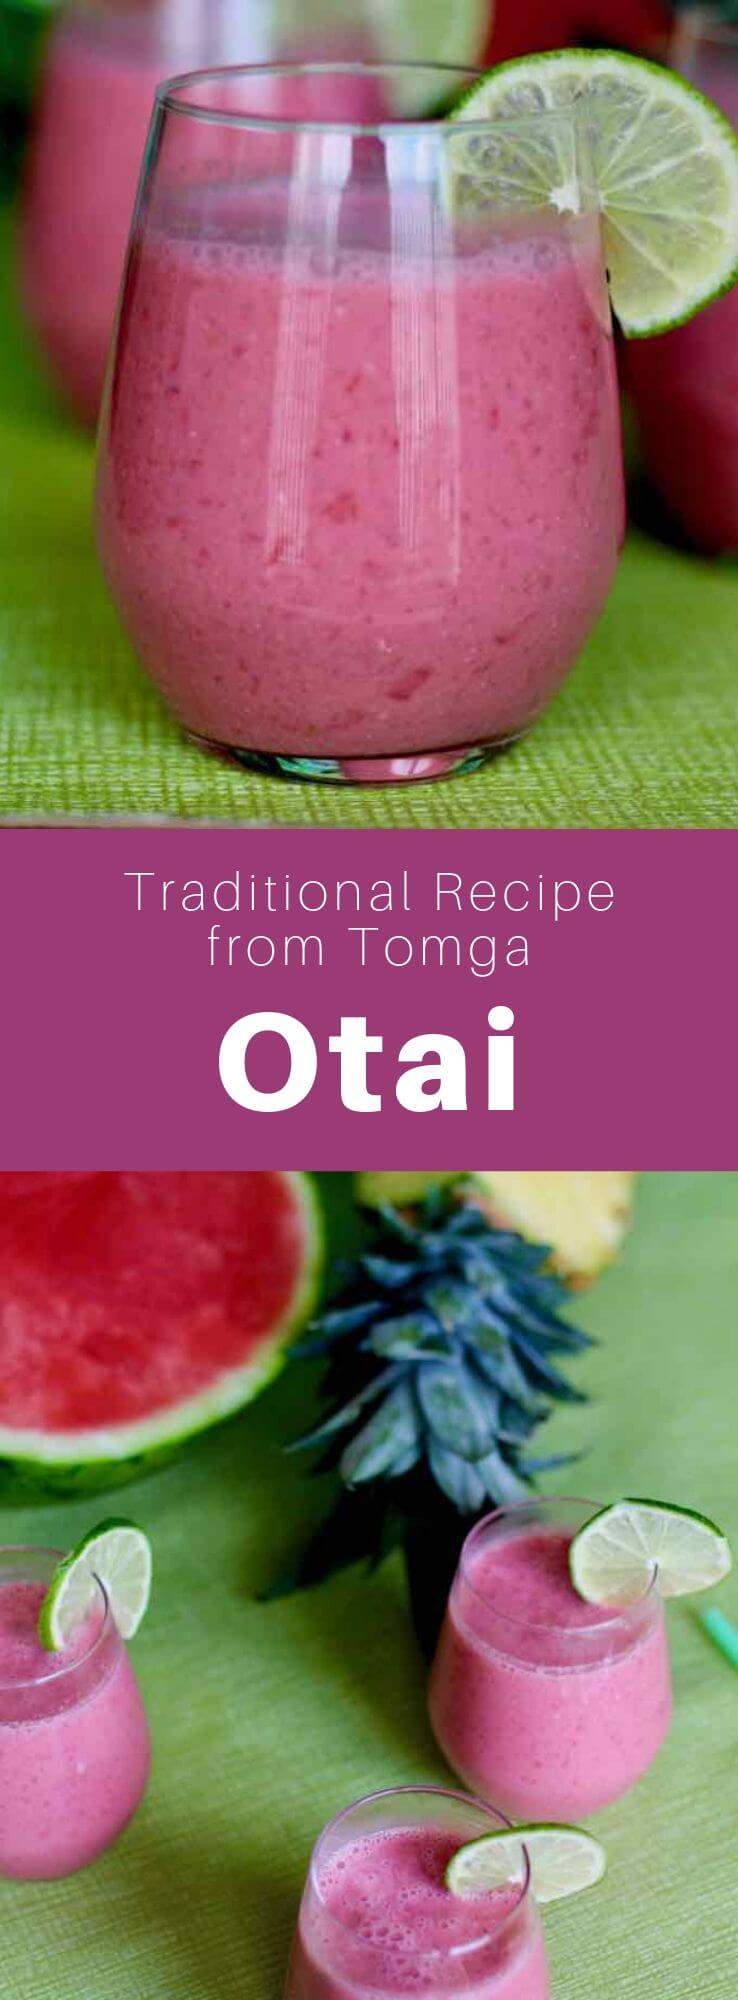 Otai is a fruit drink from Western Polynesia, made from a mixture of water, coconut and a variety of tropical fruits, especially watermelon mixed with pineapple. #Tonga #Polynesia #PolynesianDrink #WorldCuisine #196flavors